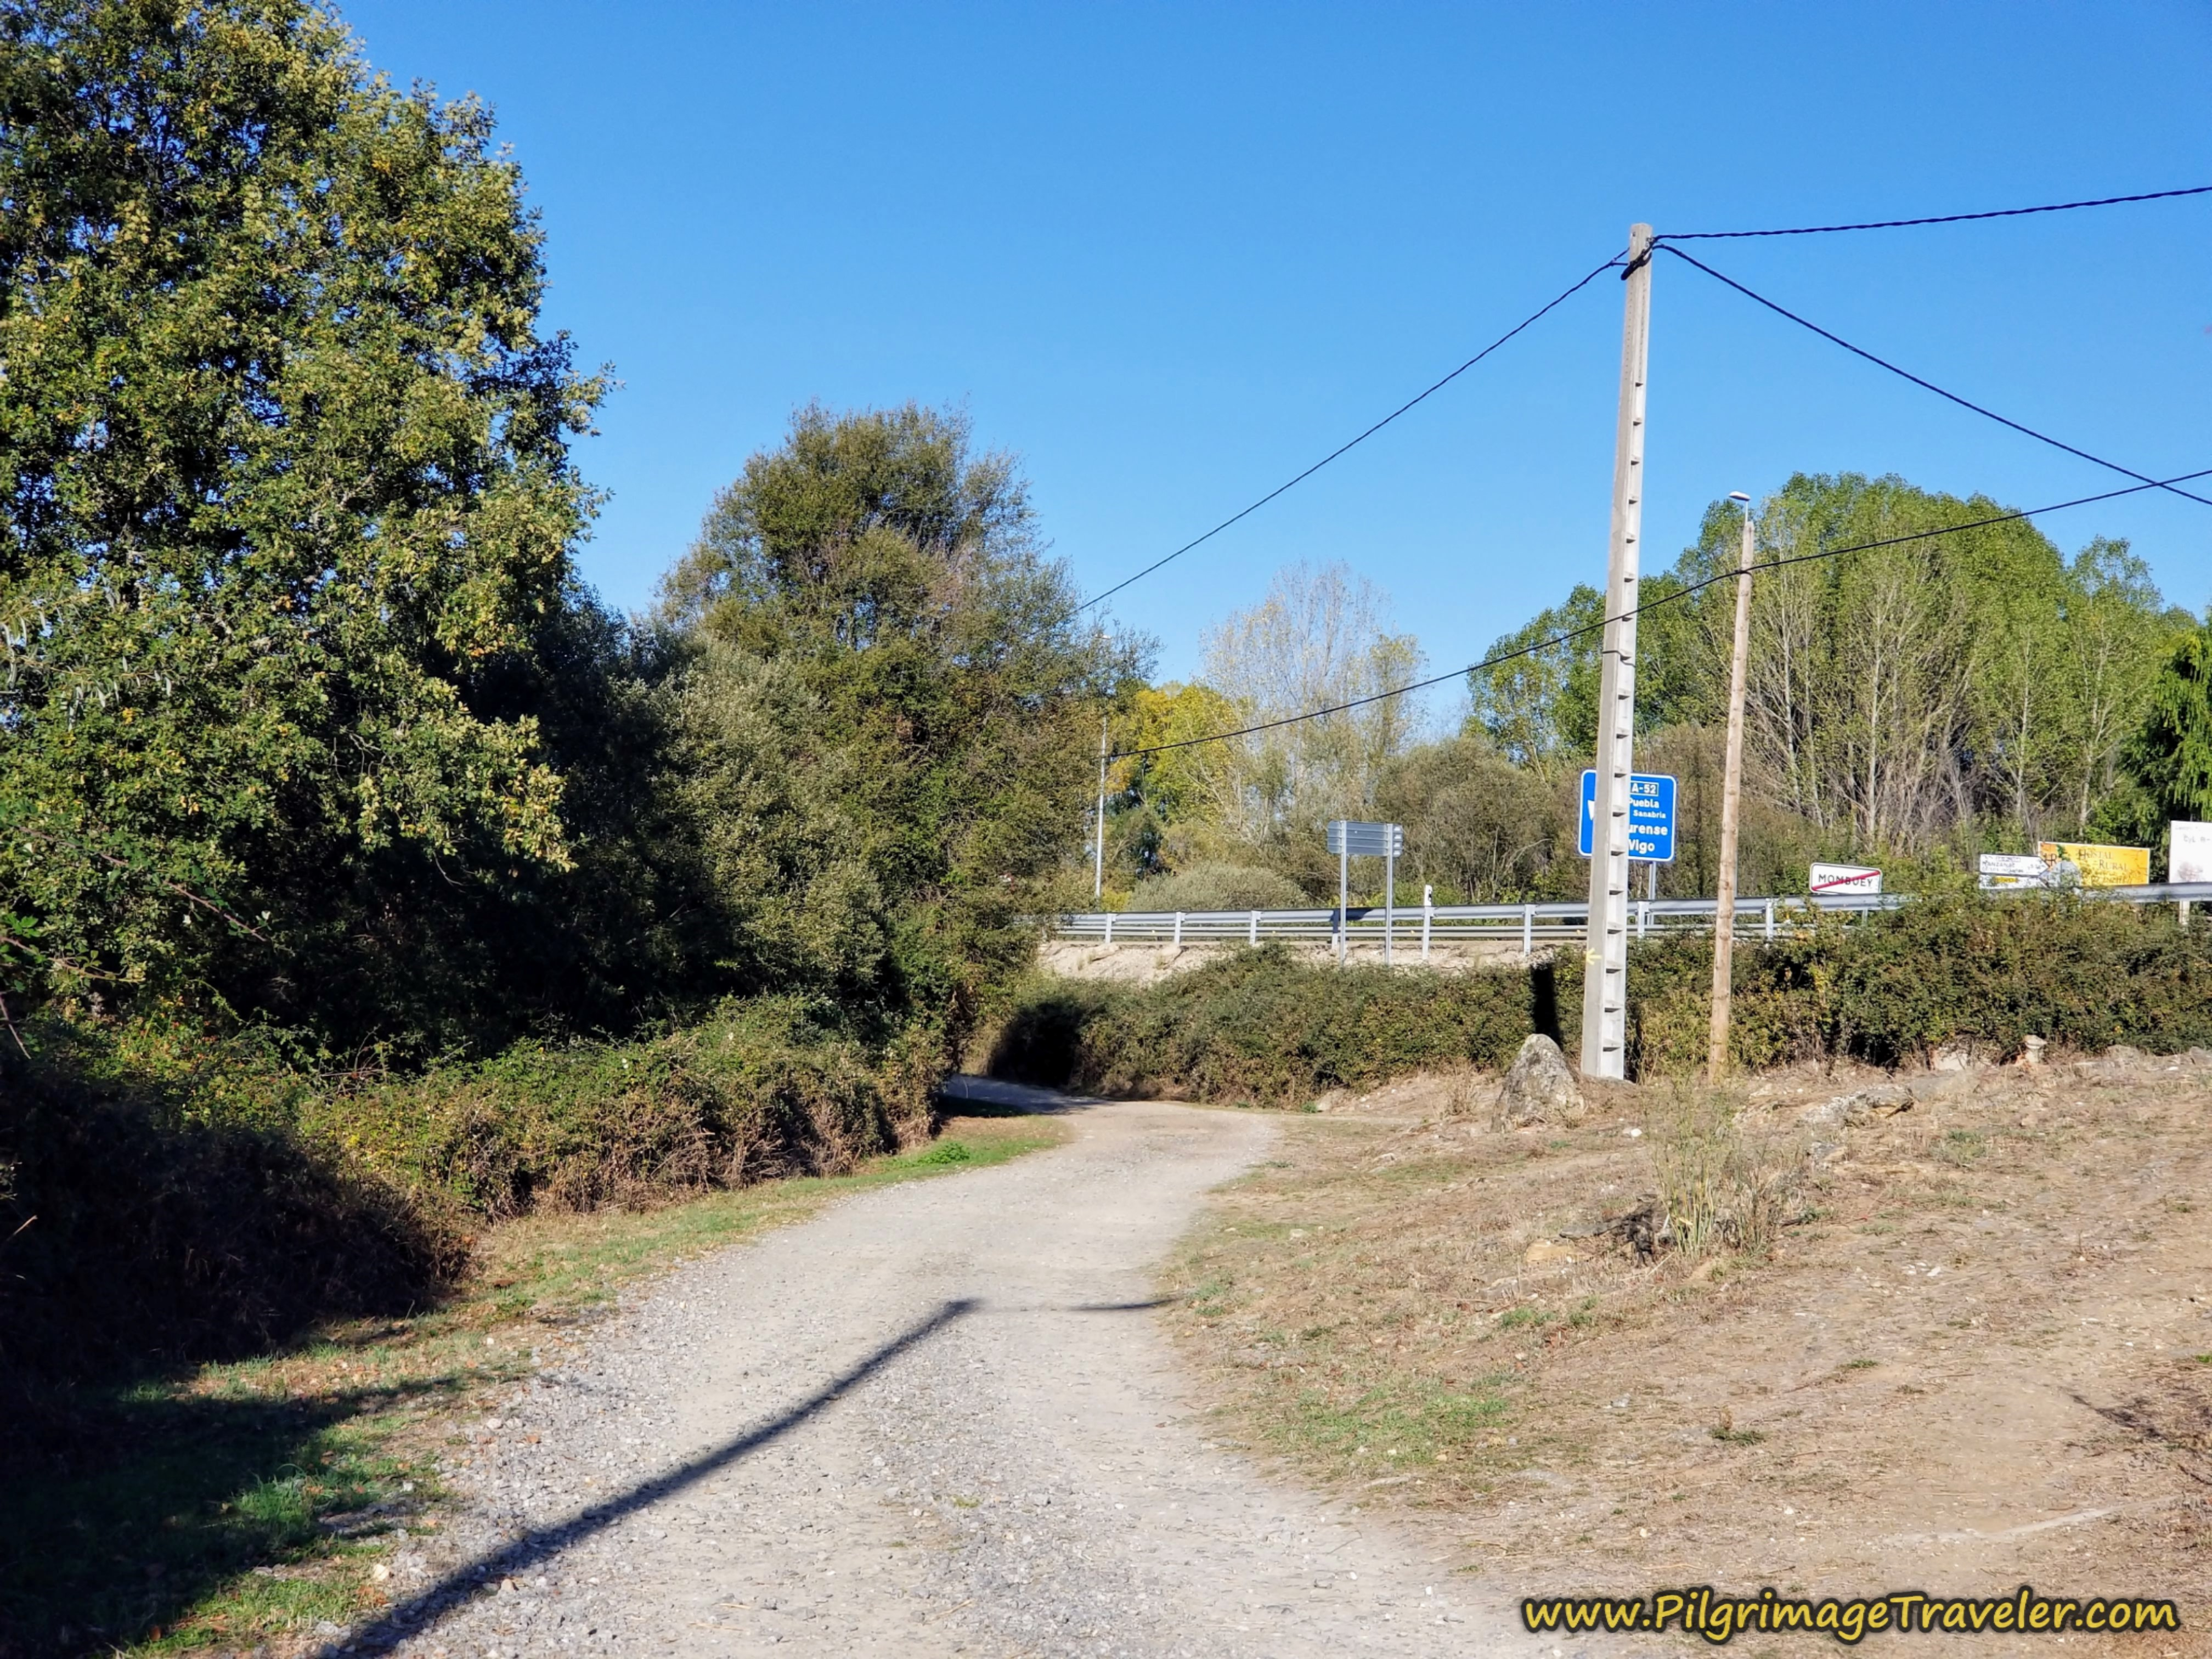 Follow Frontage Lane with N-525 on the Camino Sanabrés from Rionegro del Puente to Entrepeñas